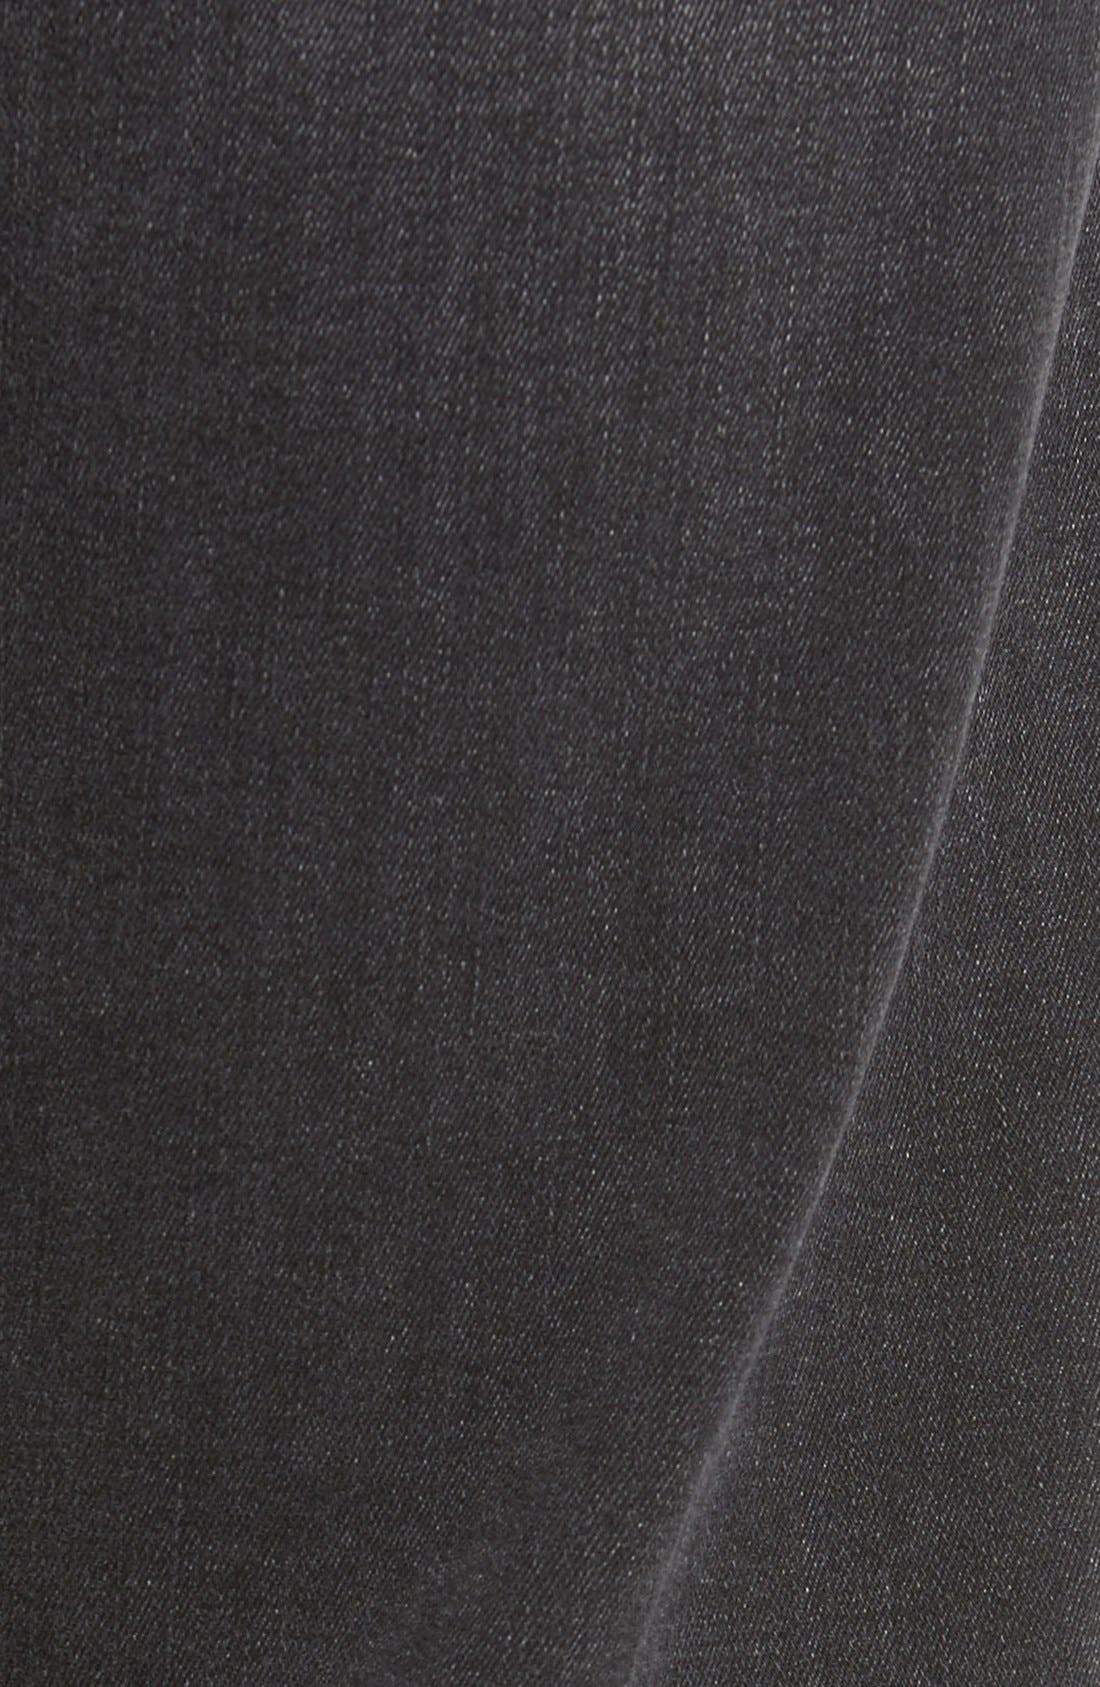 'Courage' Straight Leg Jeans,                             Alternate thumbnail 5, color,                             Courage Coal Soft